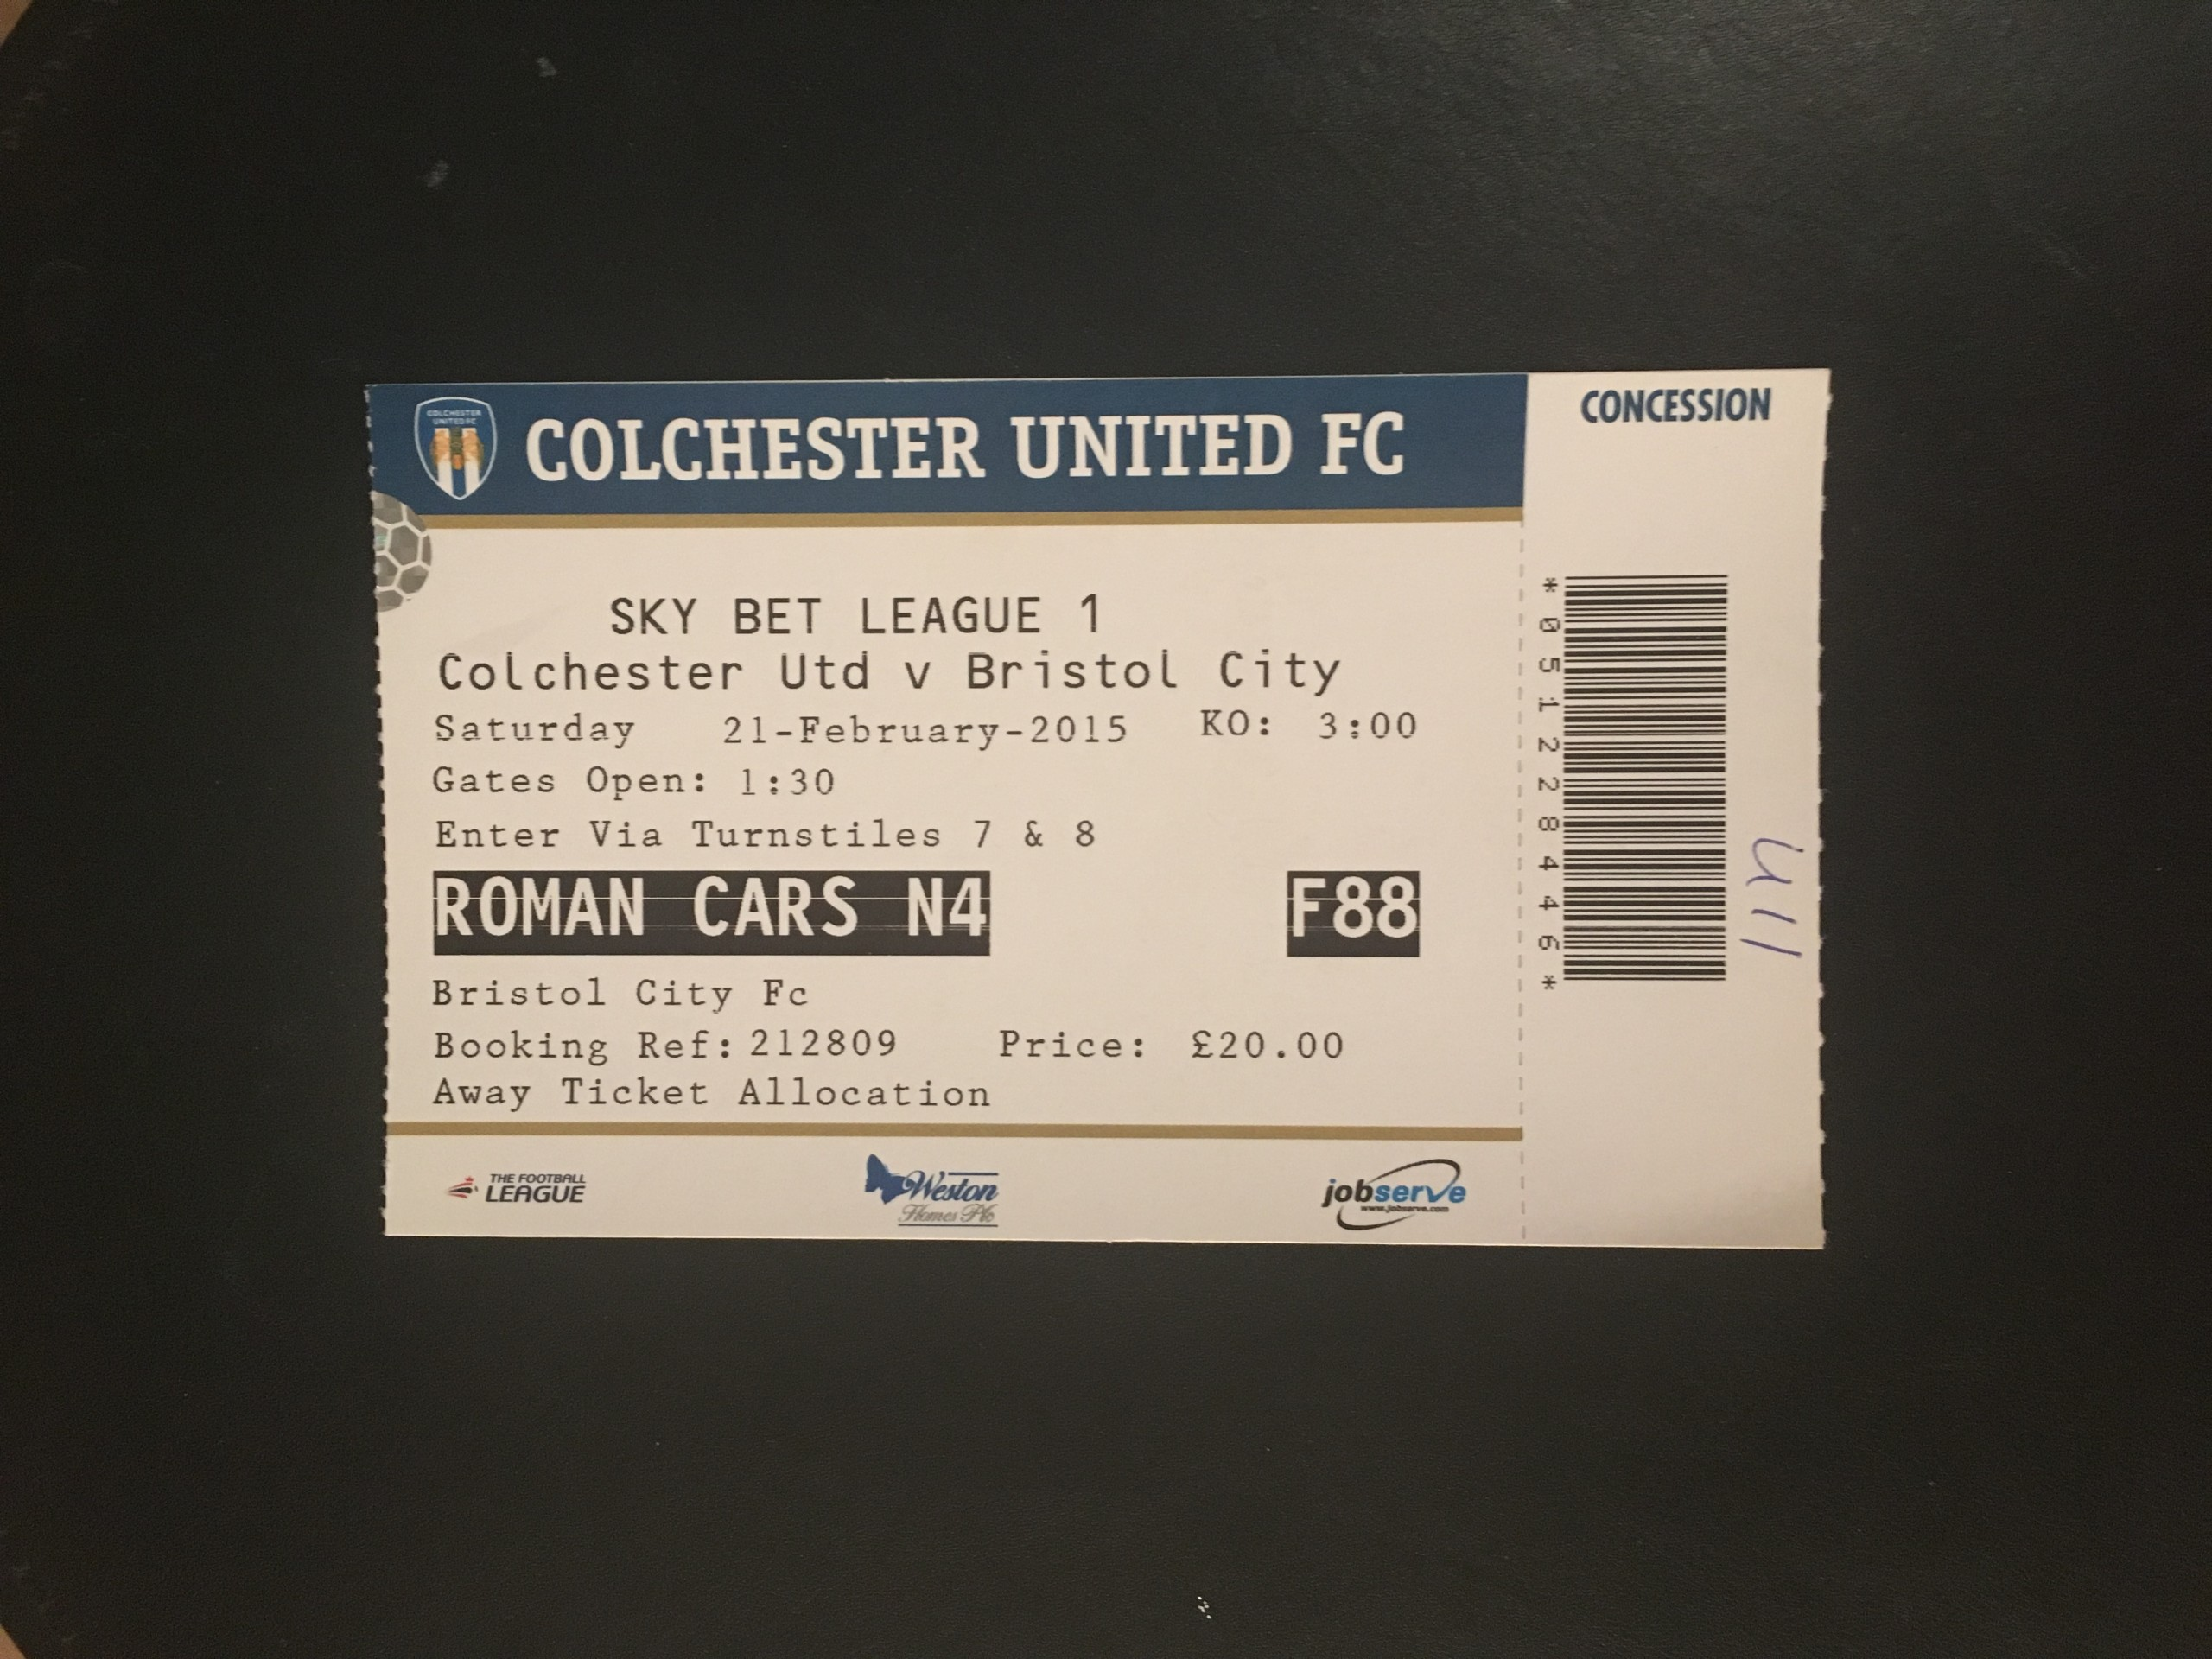 Colchester United v Bristol City 21-02-2015 Ticket